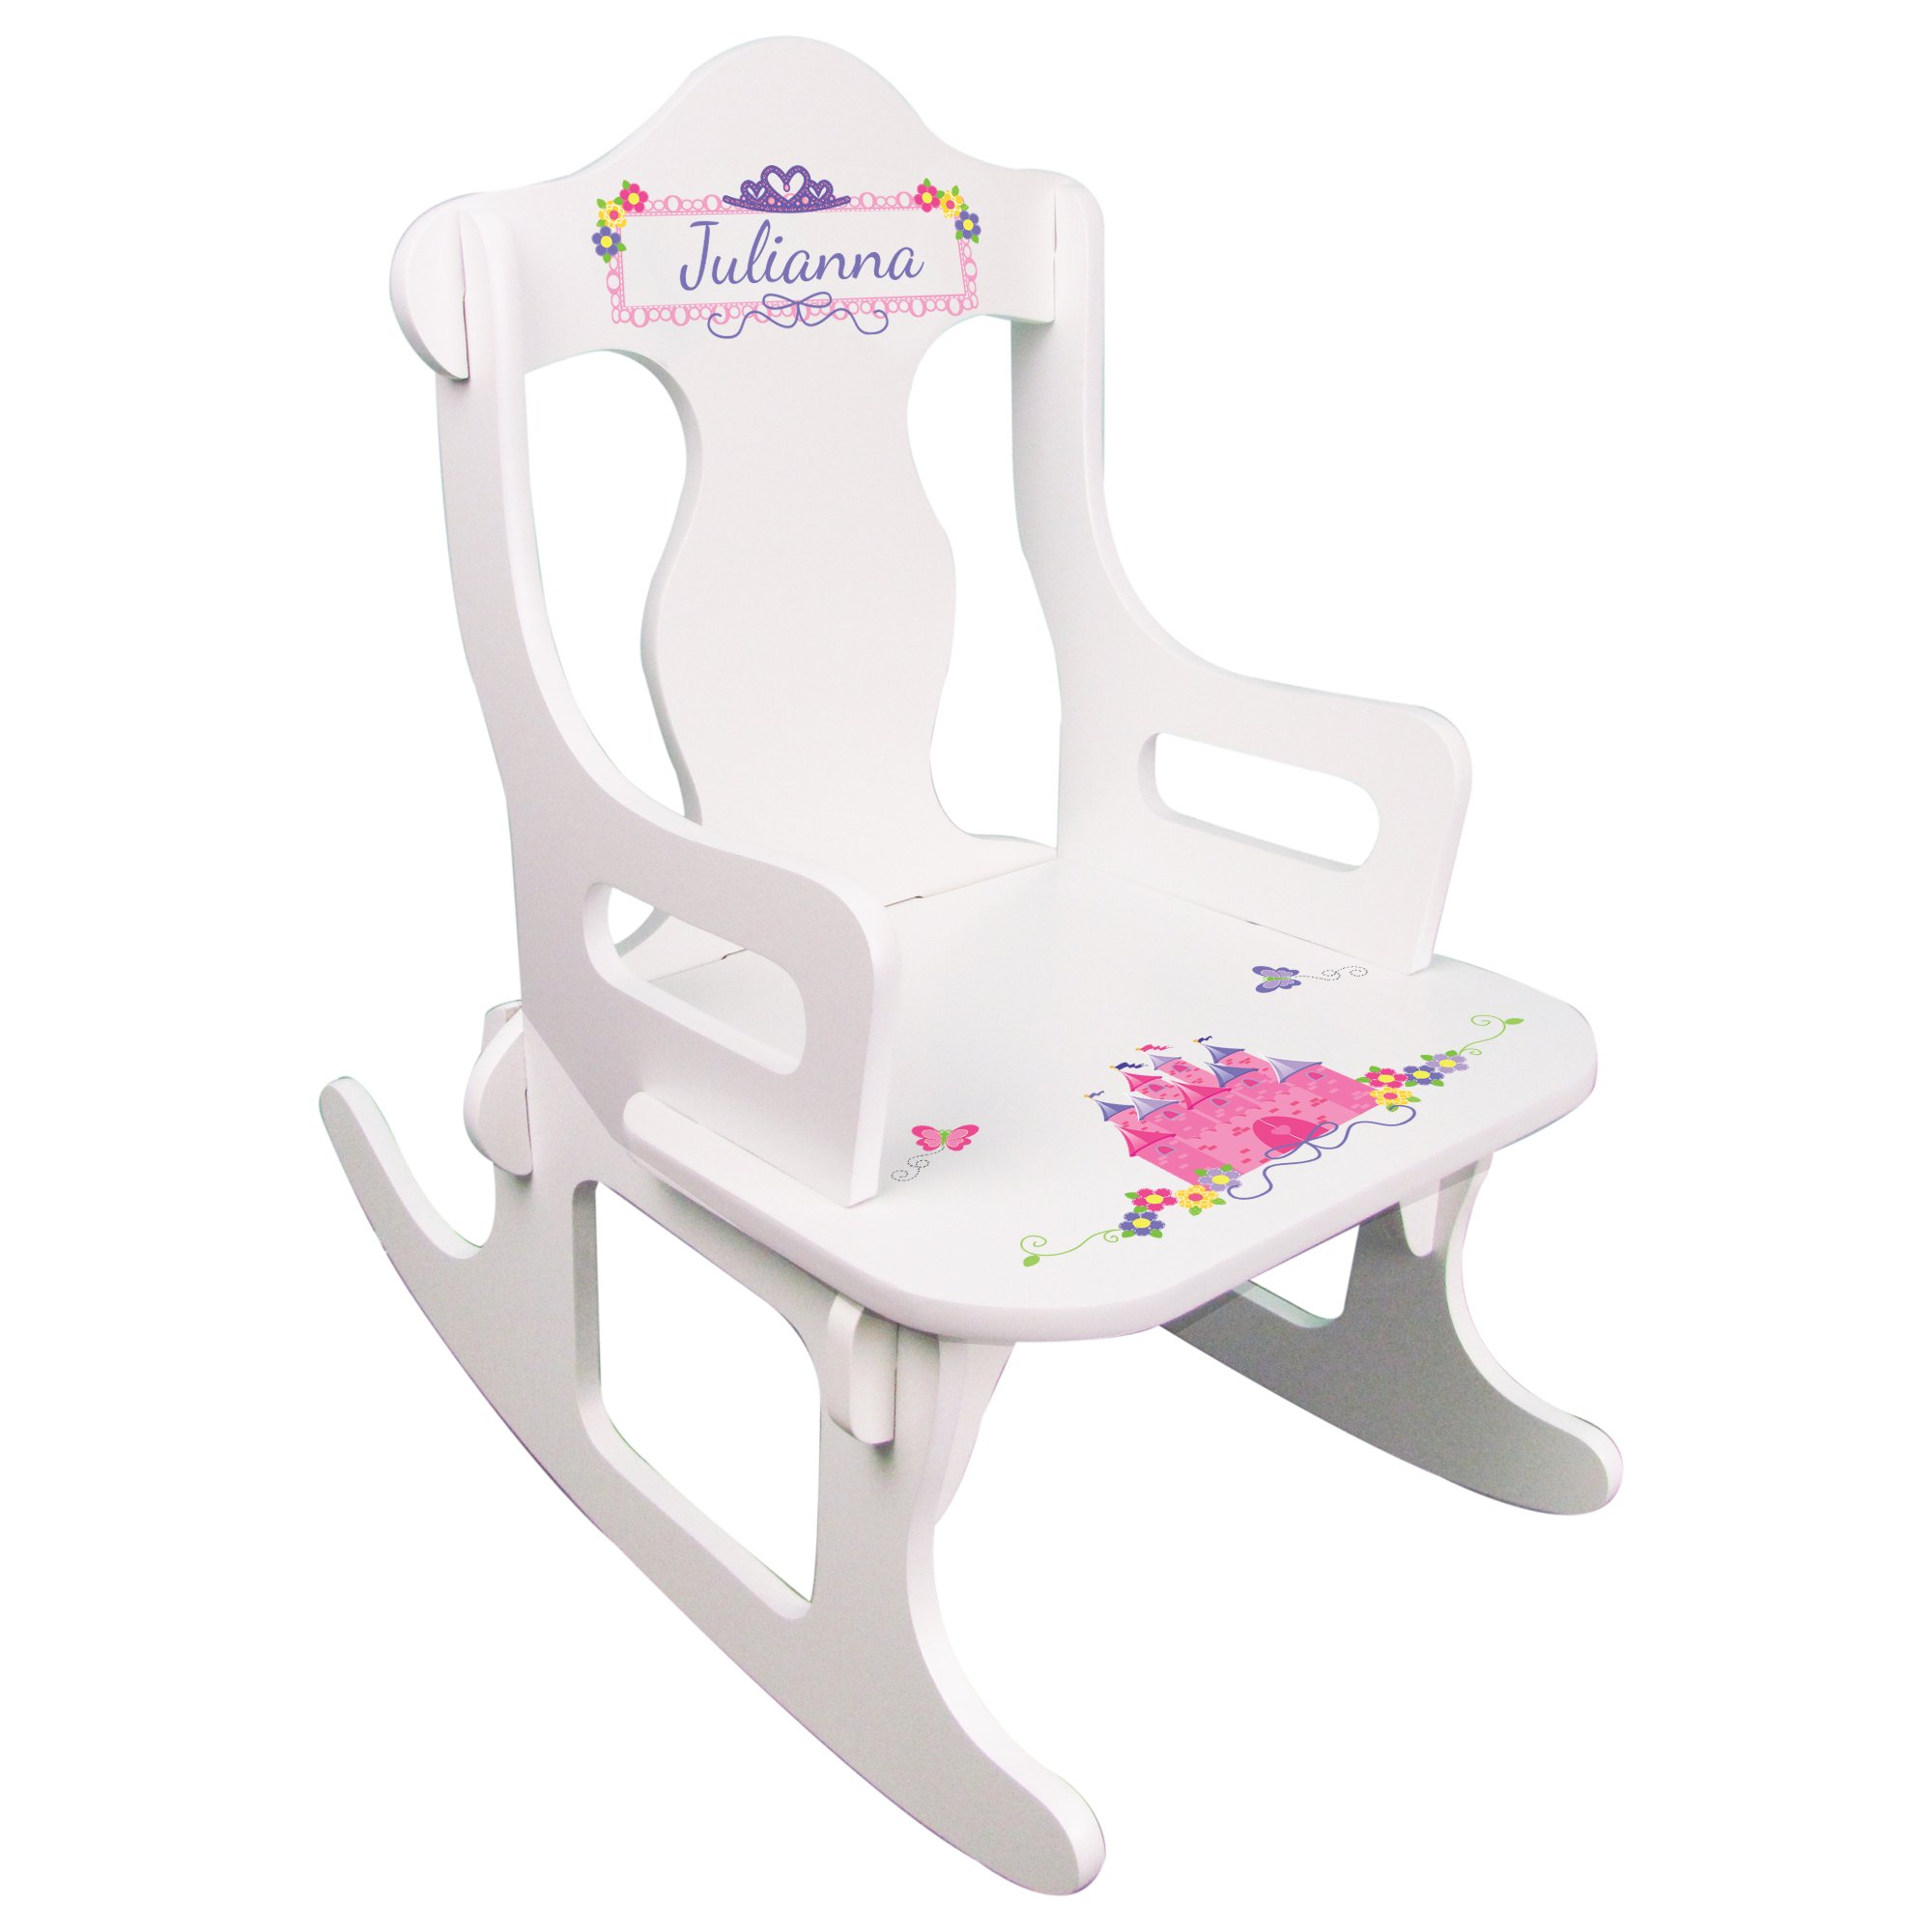 Personalized Child's Princess Puzzle Rocking Chair